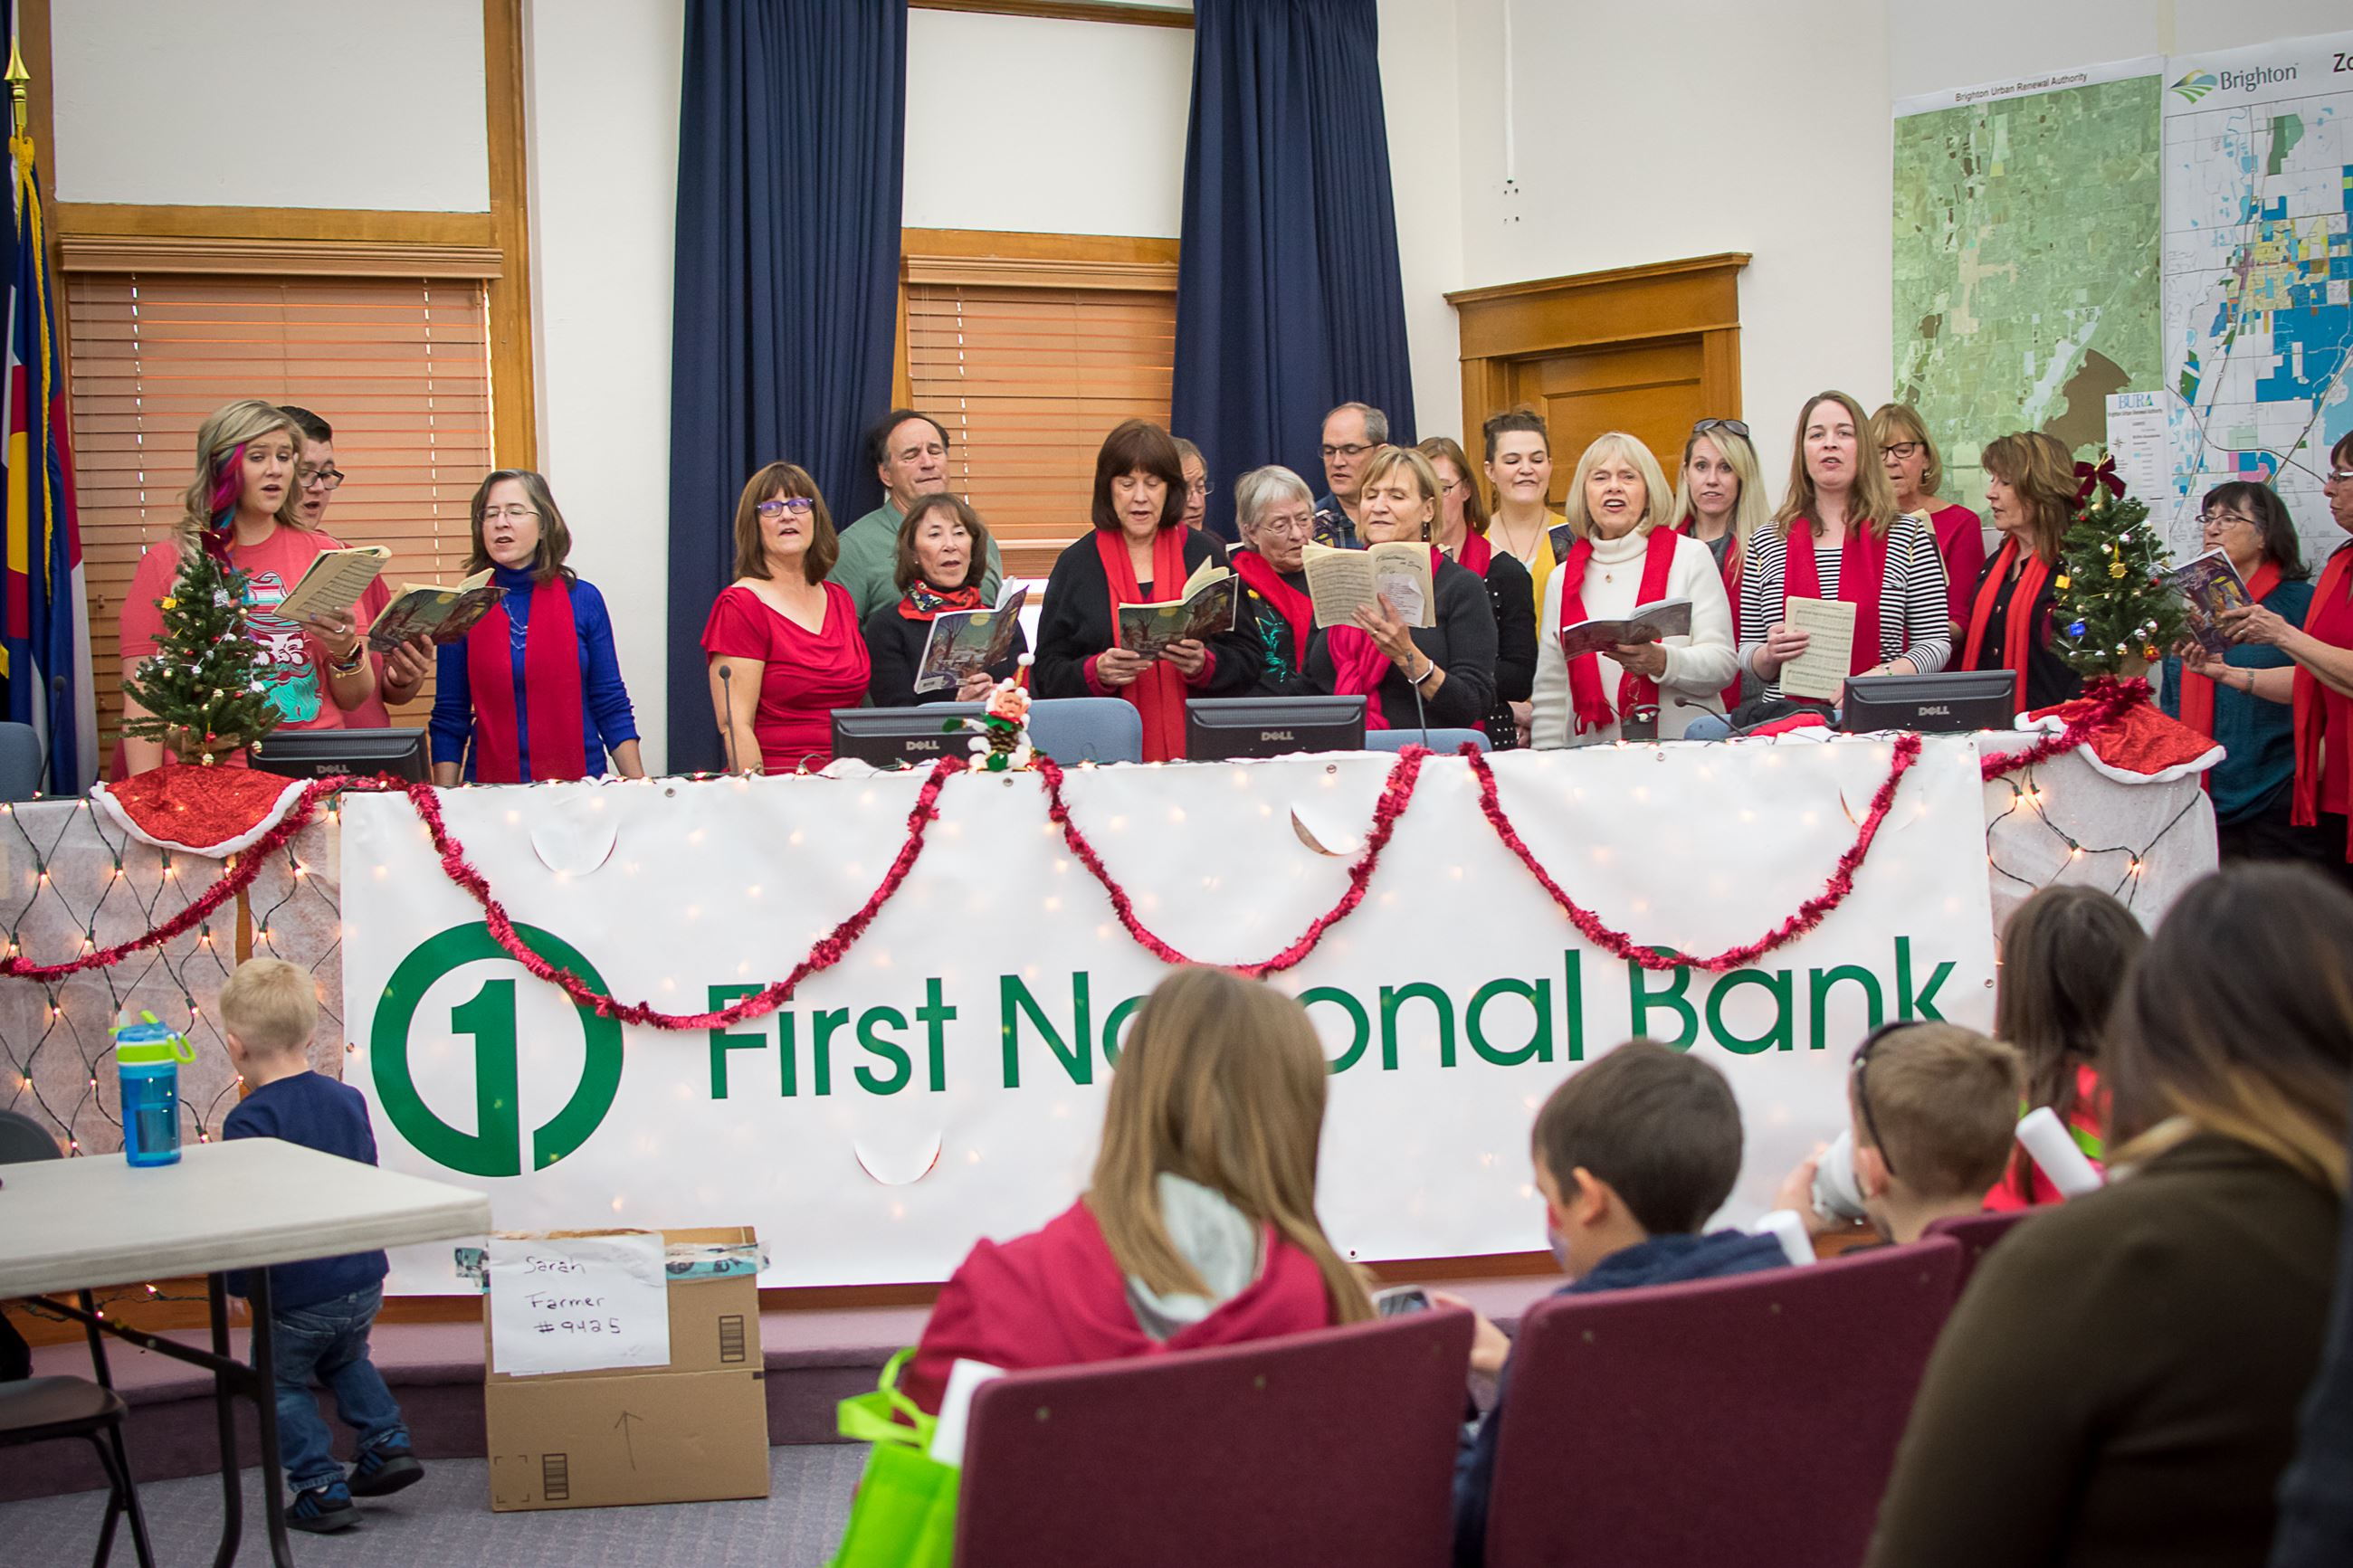 FOL SPONSOR-FIRST NATIONAL BANK